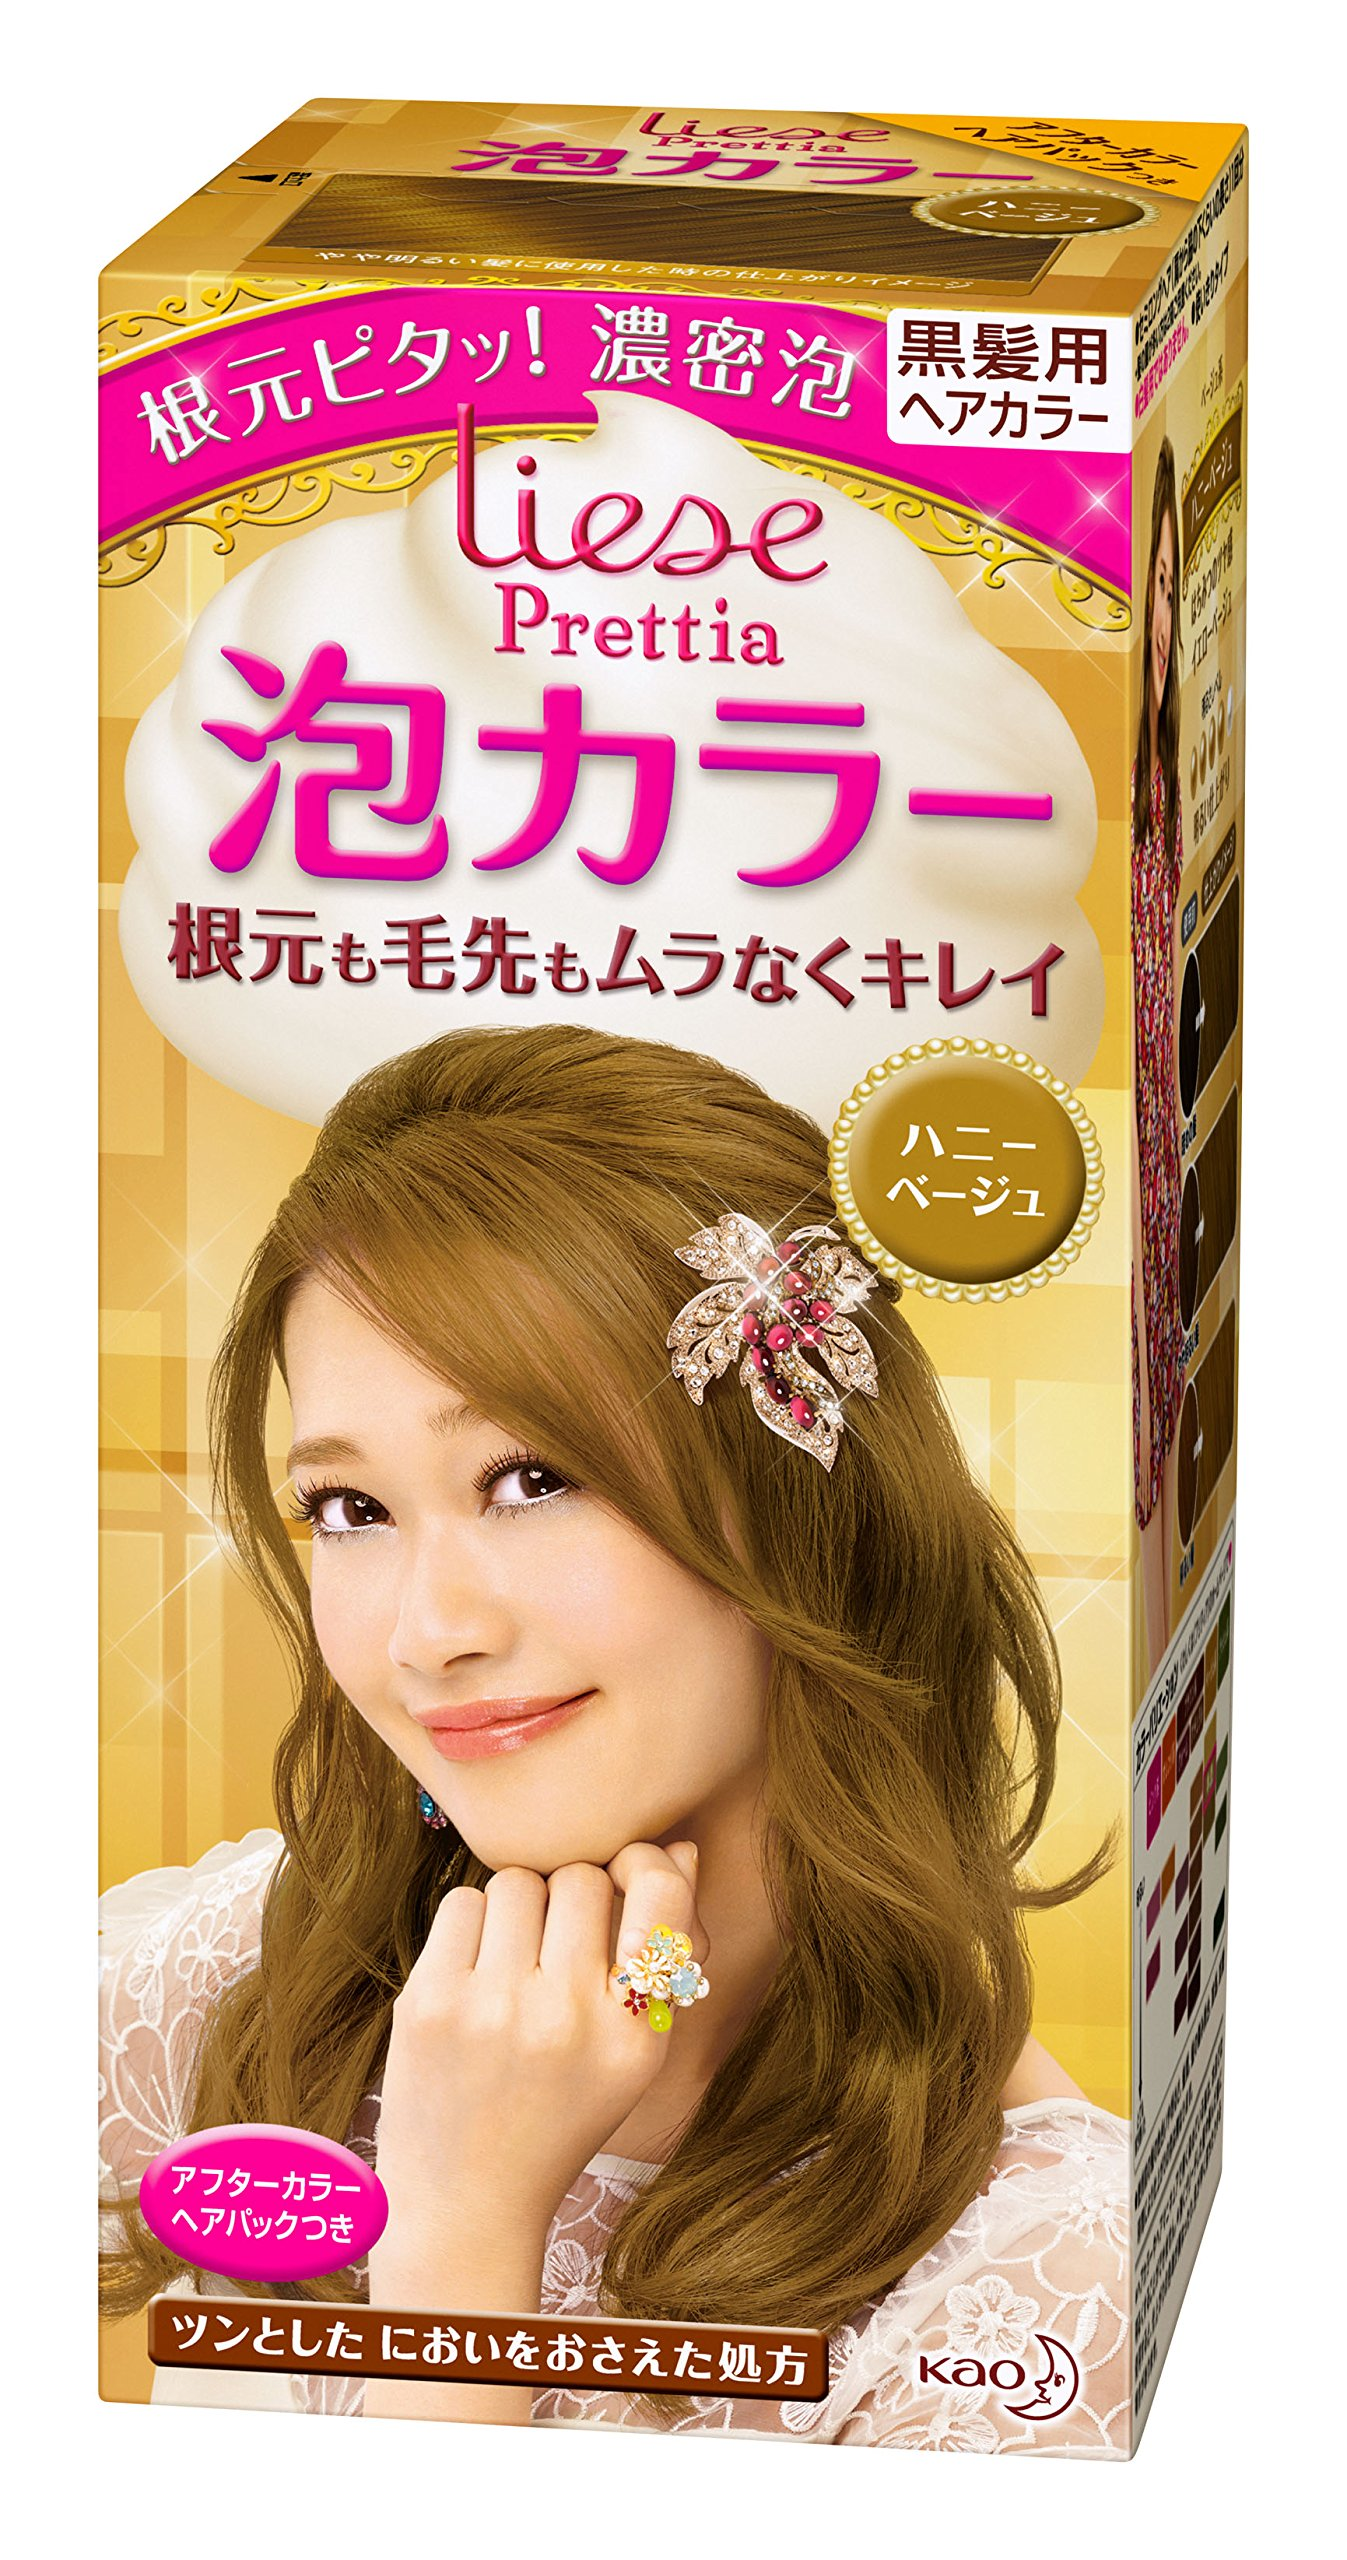 PRETTIA Kao Bubble Hair Color, Honey Beige 11, 3.38 Fluid Ounce